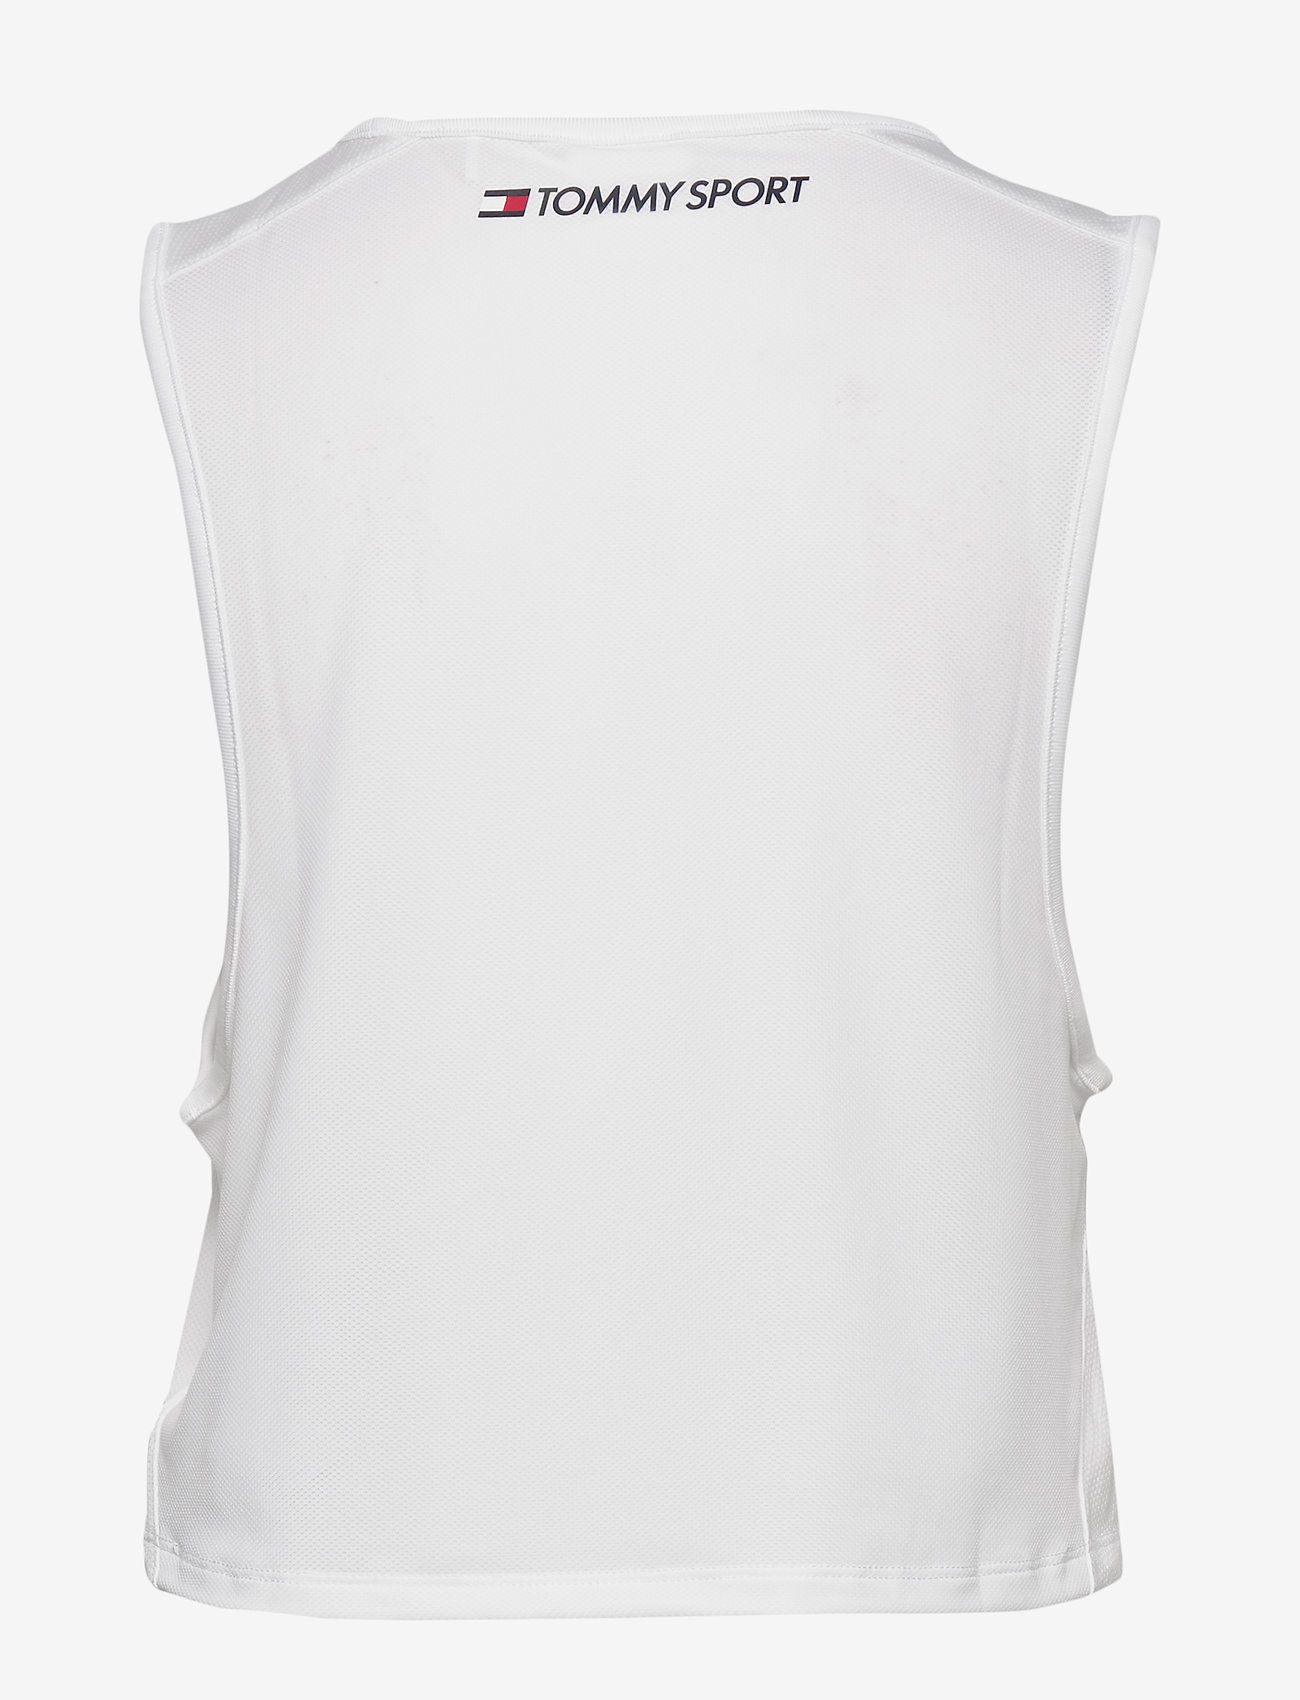 Tommy Sport - PERFORMANCE TANK TOP LBR - tank tops - white - 1